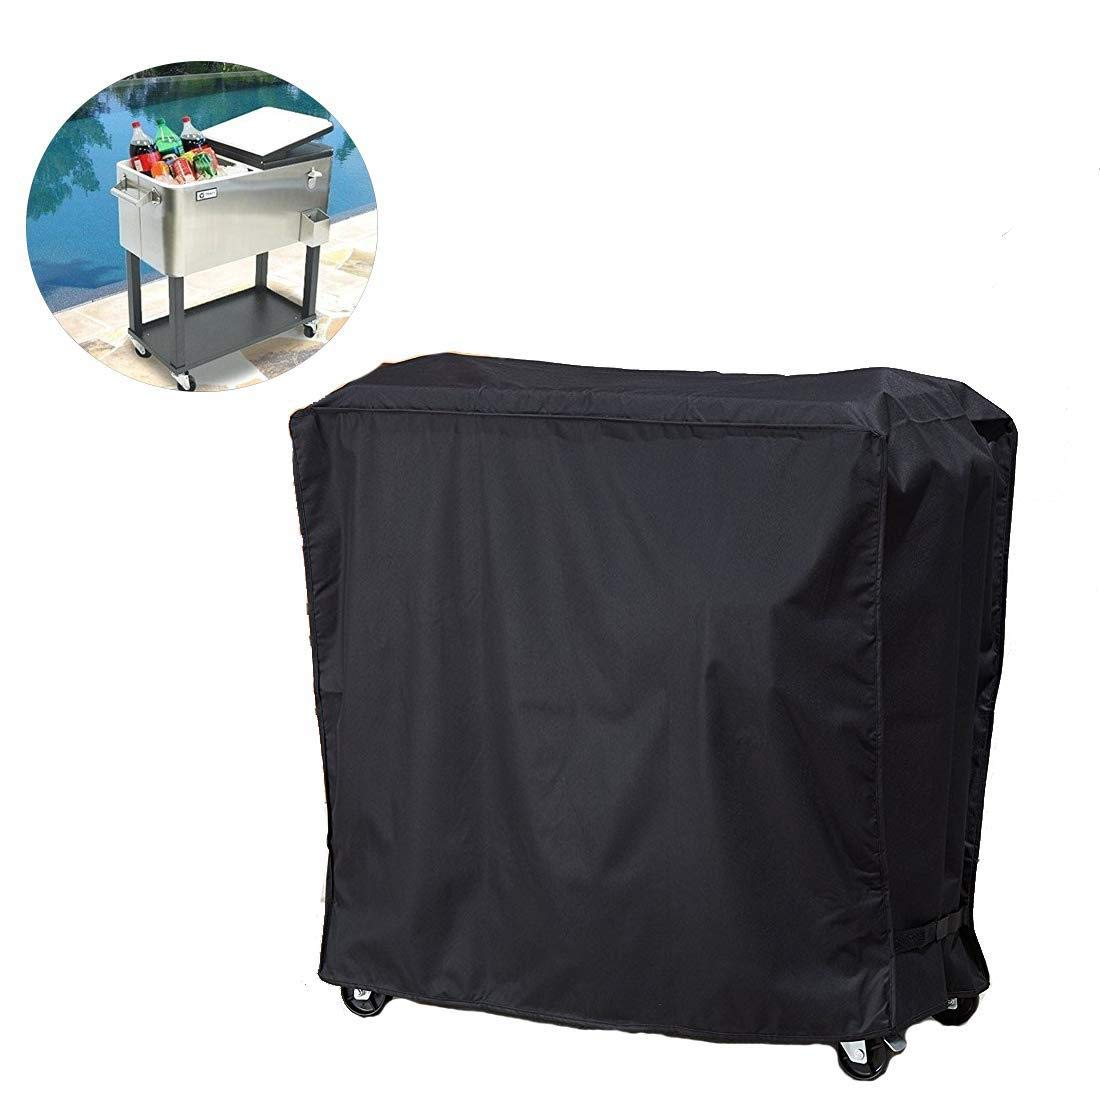 Heavy Duty UV Resistant Protector Cover Fit for Patio Ice Chest Party Bar Beverage Cart and Outdoors Rolling Cooler On Wheels Cooler Cart Cover,Waterproof 80Qt Rolling Cooler Cart Cover Black